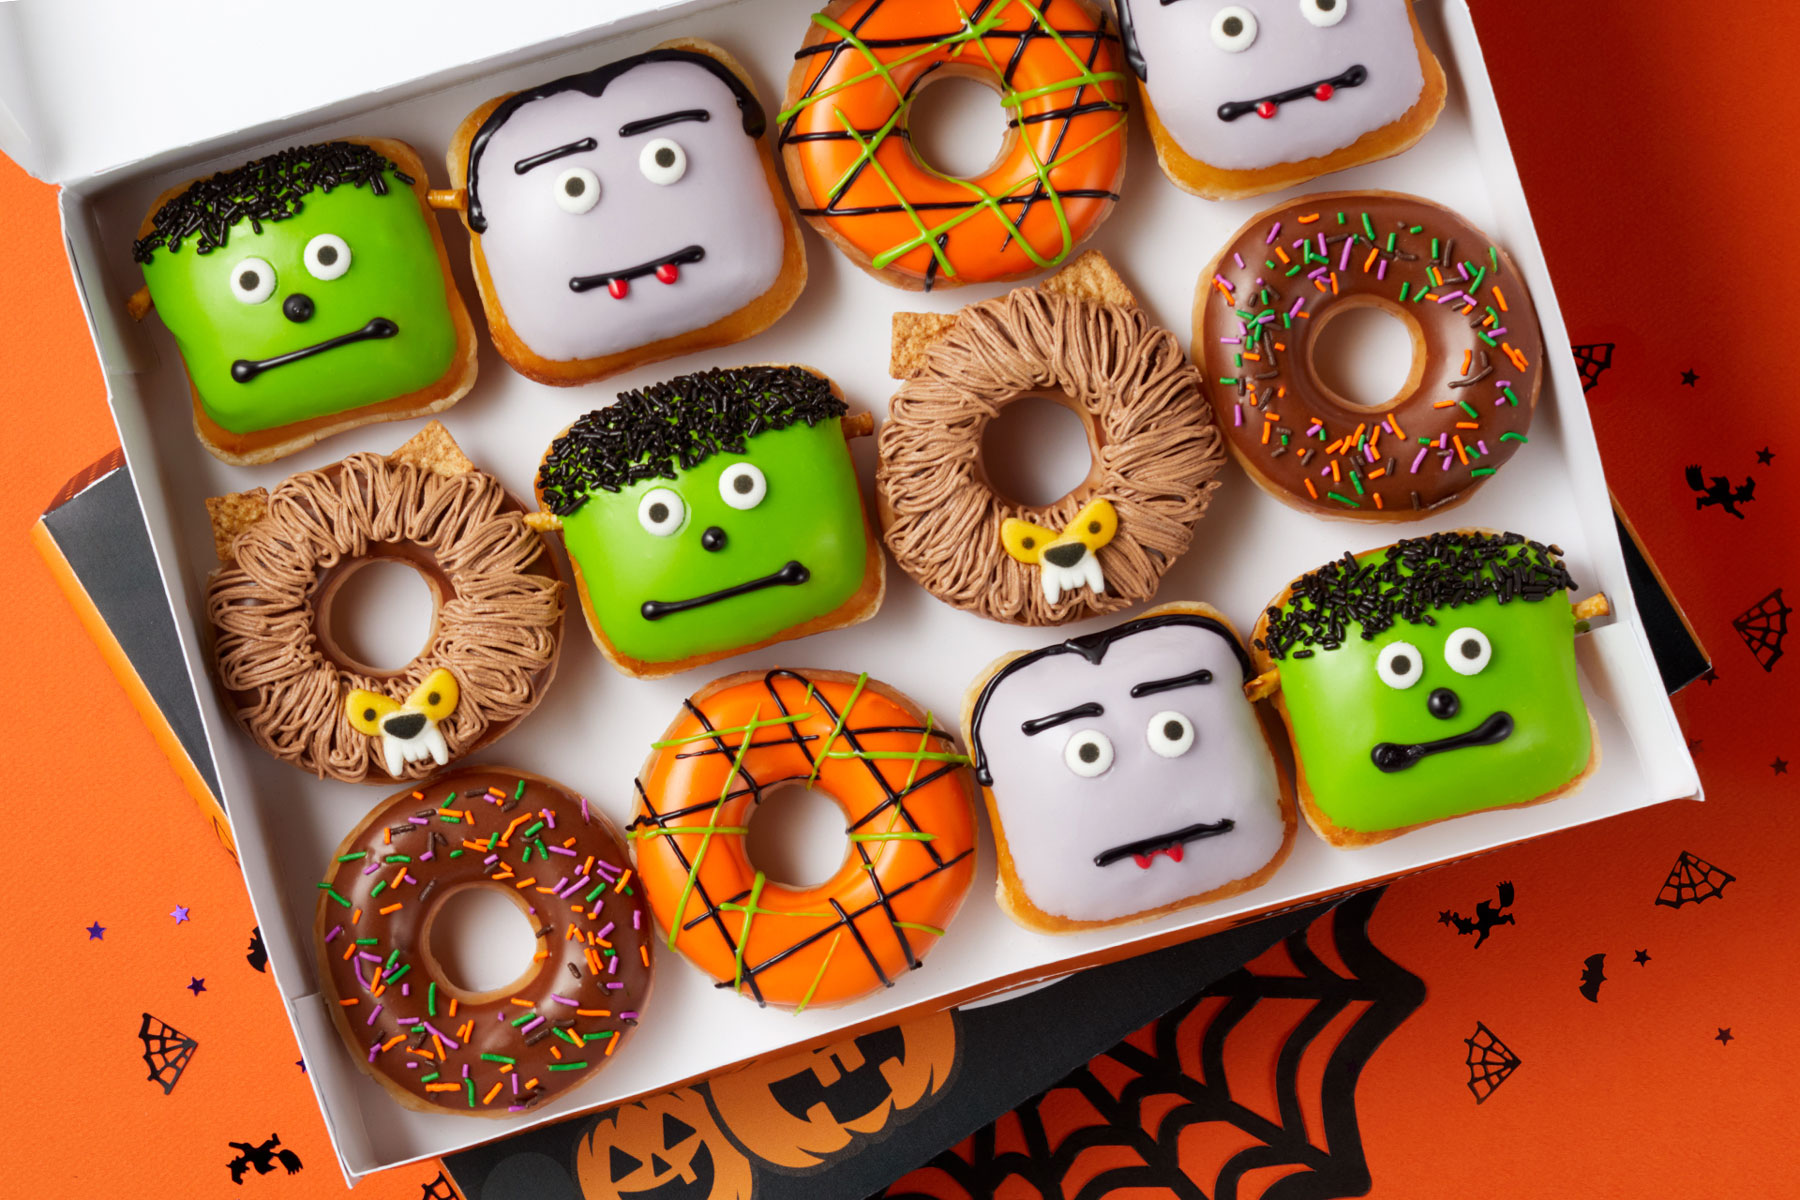 Krispy Kreme monster-themed doughnuts